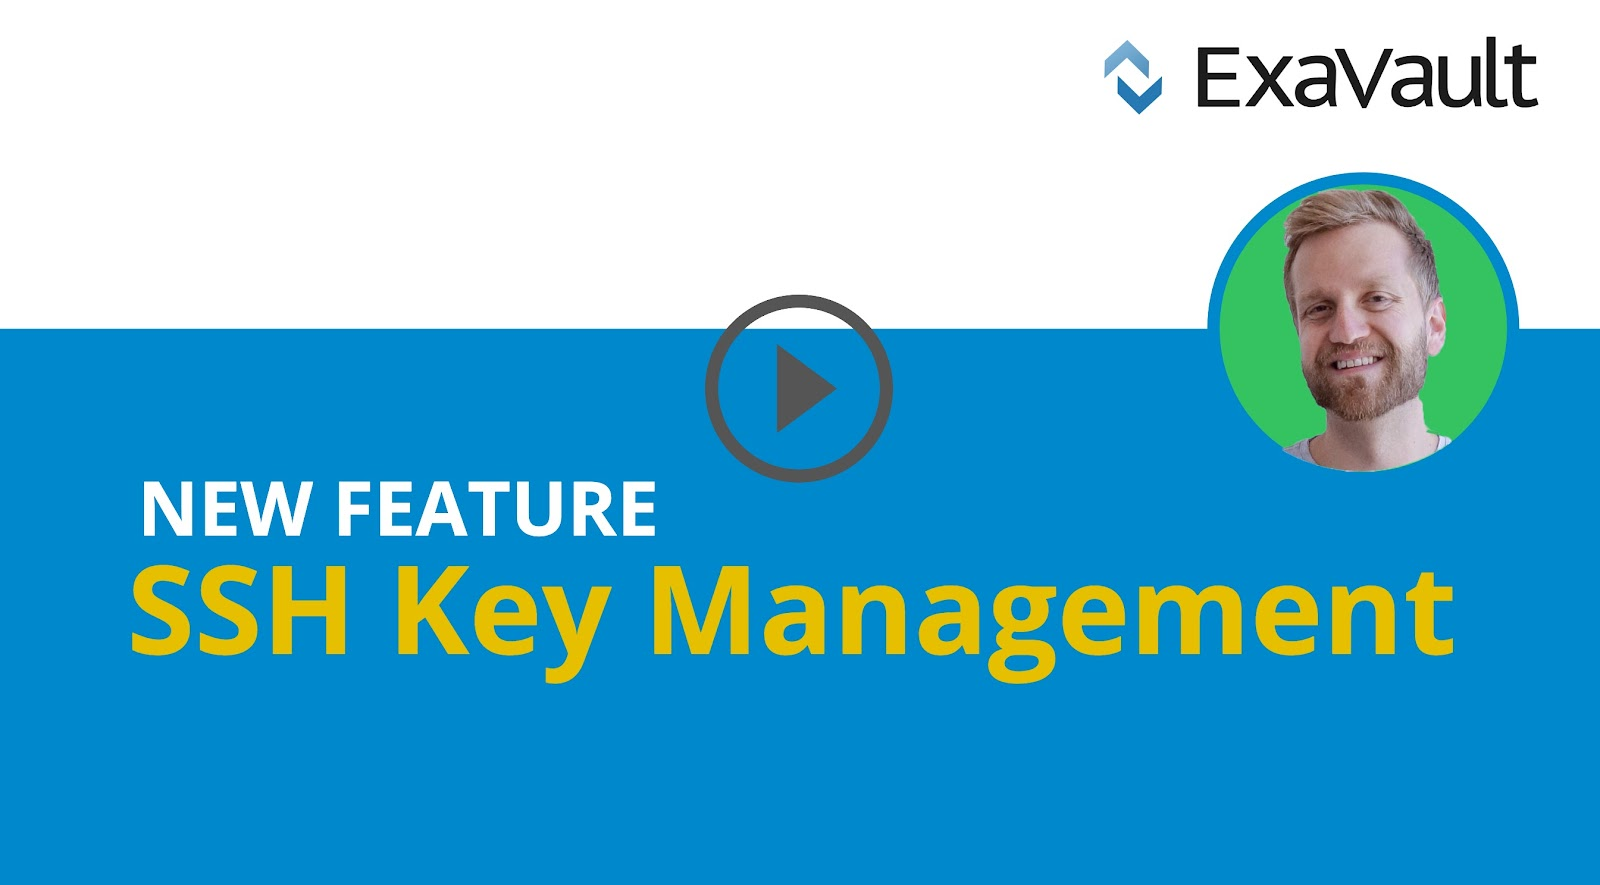 Thumbnail for New Feature SSH Key Management video.